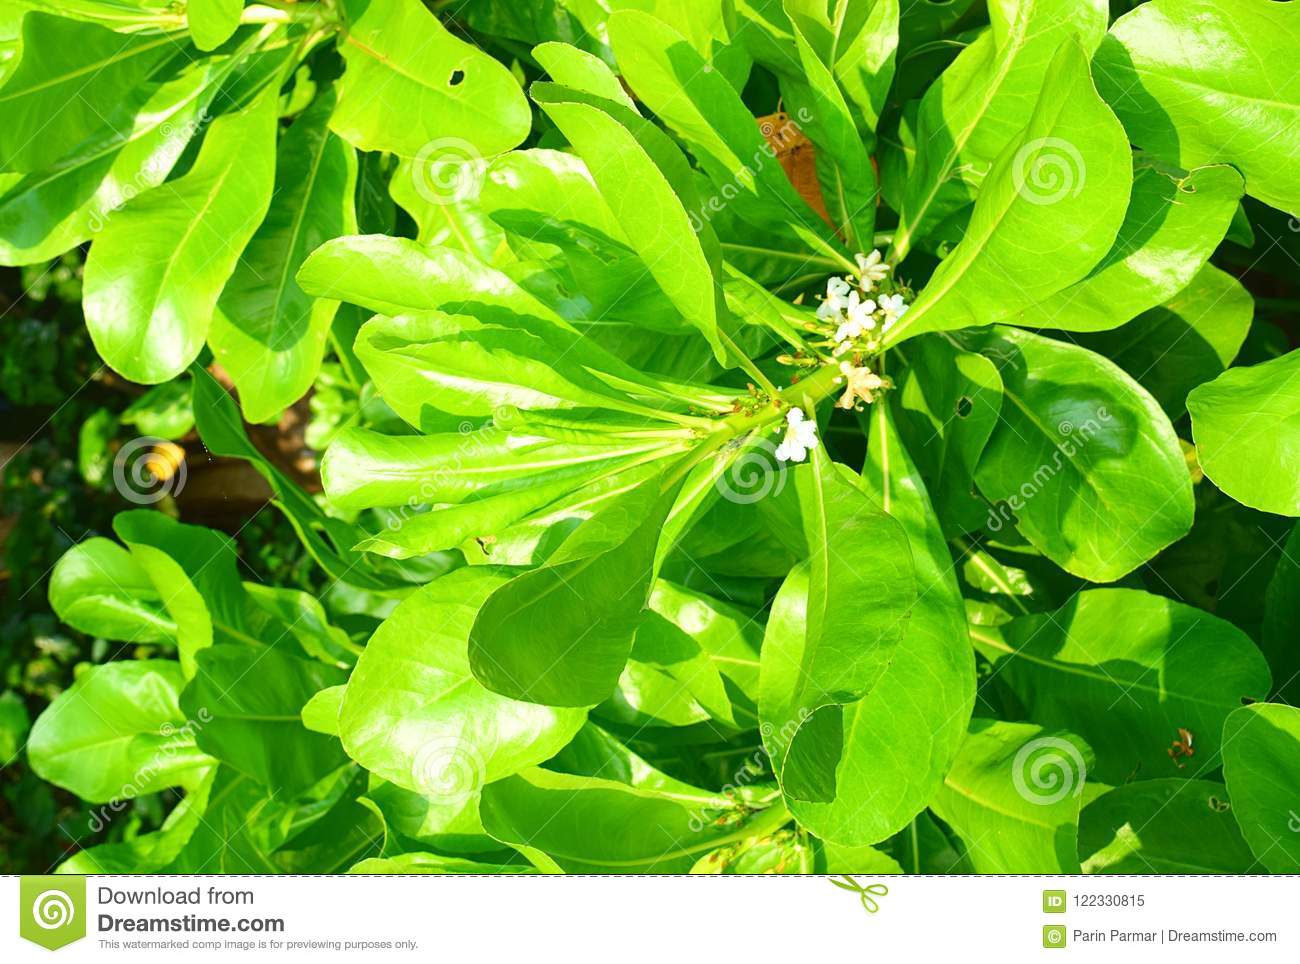 Small white flowers and large green leaves of mangrove tree stock this is a photograph of small white flowers and large green leaves of a mangrove tree the image is captured at andaman islands india mightylinksfo